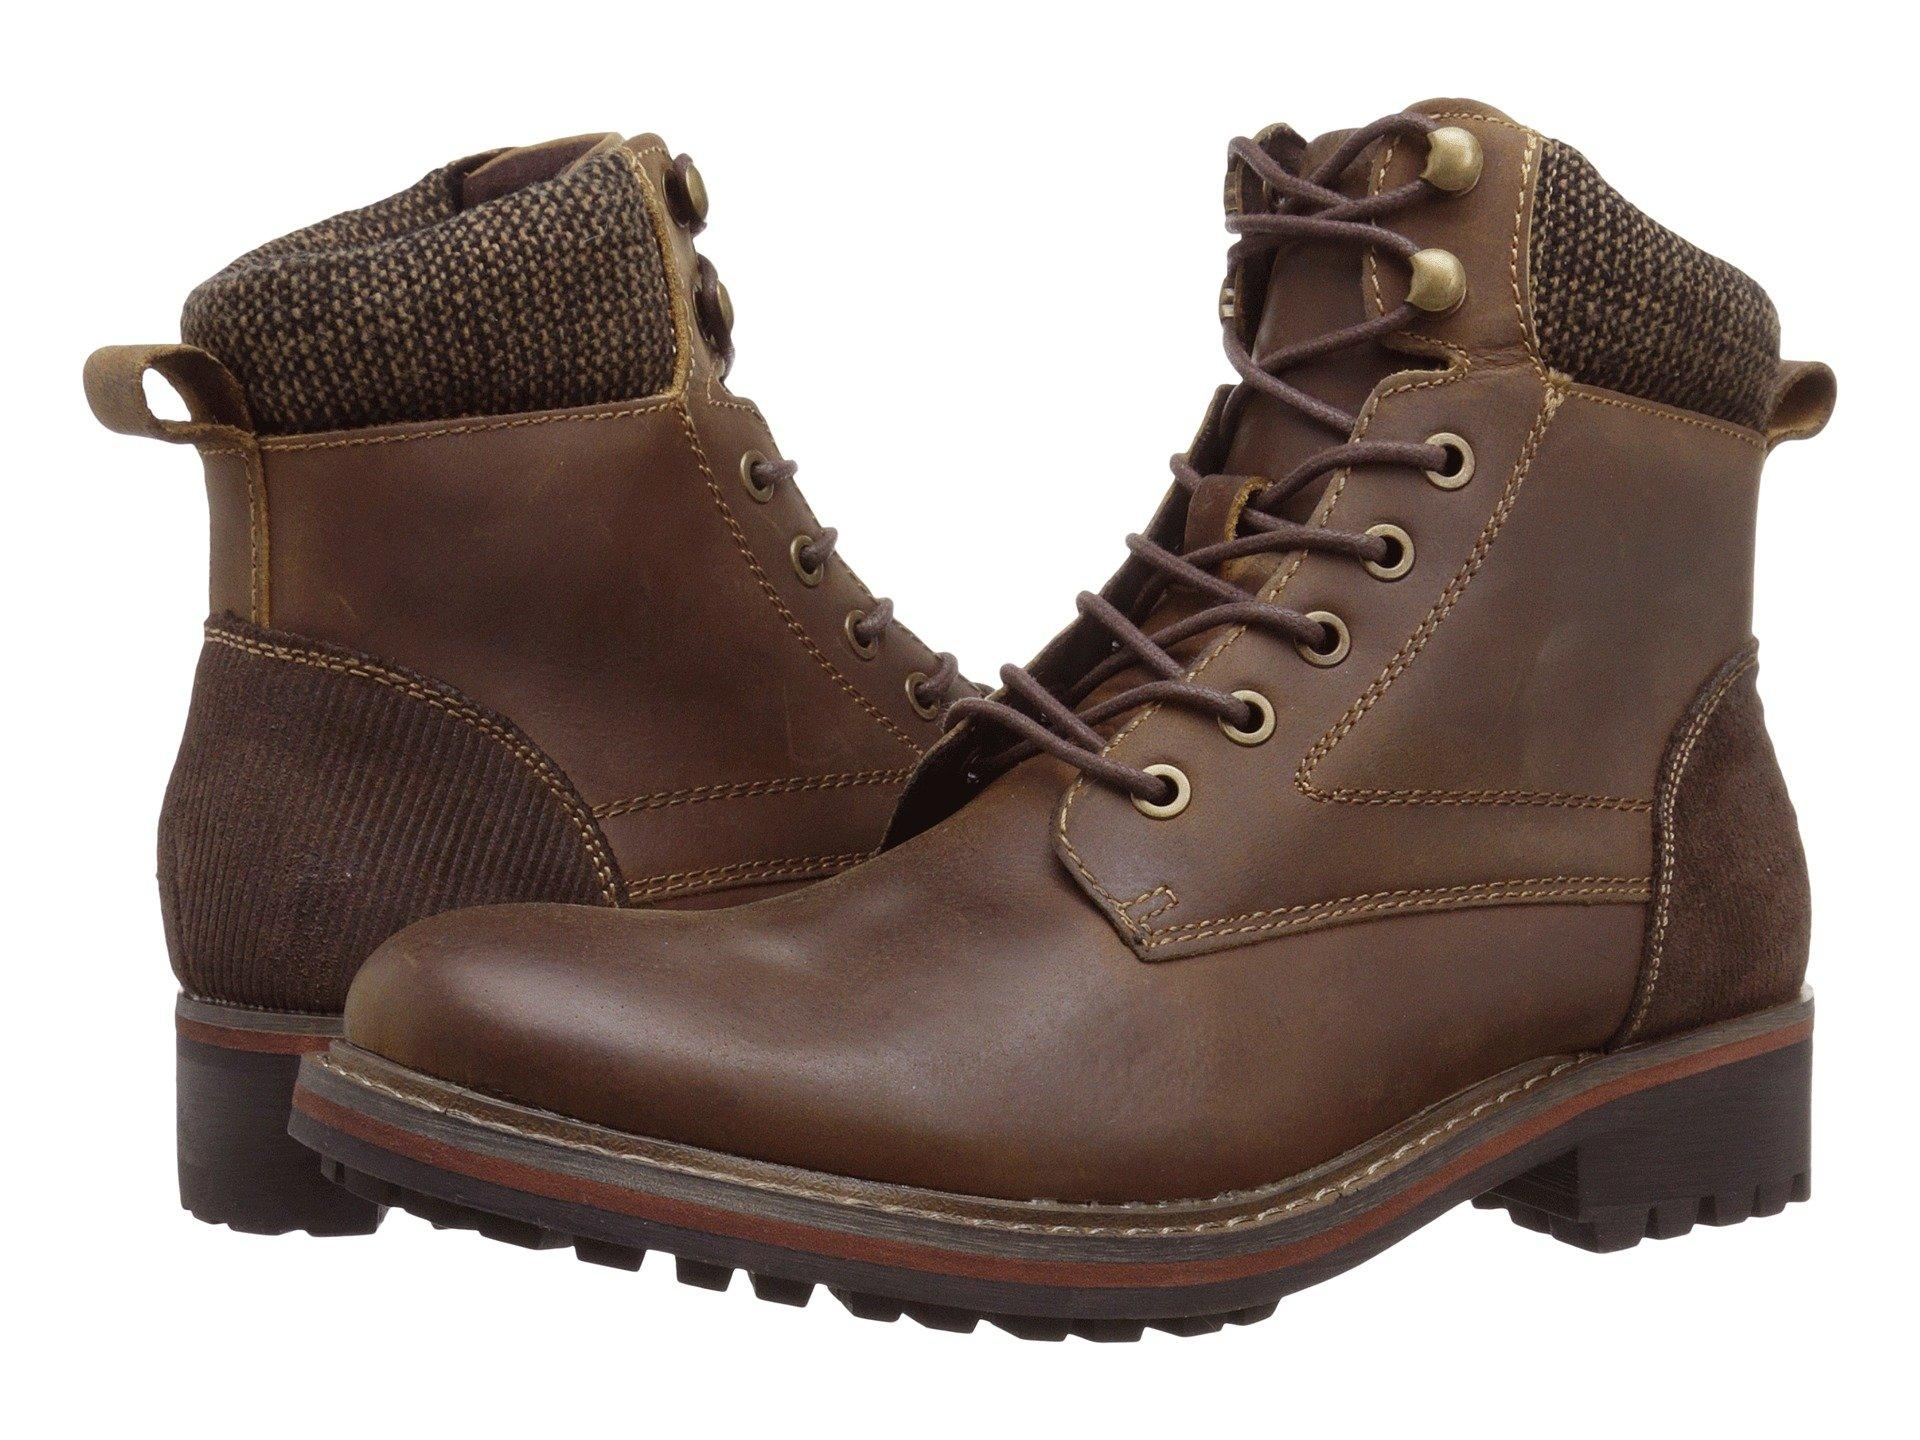 ebcbc482a6c Lyst - Gbx Gatto-13535 in Brown for Men